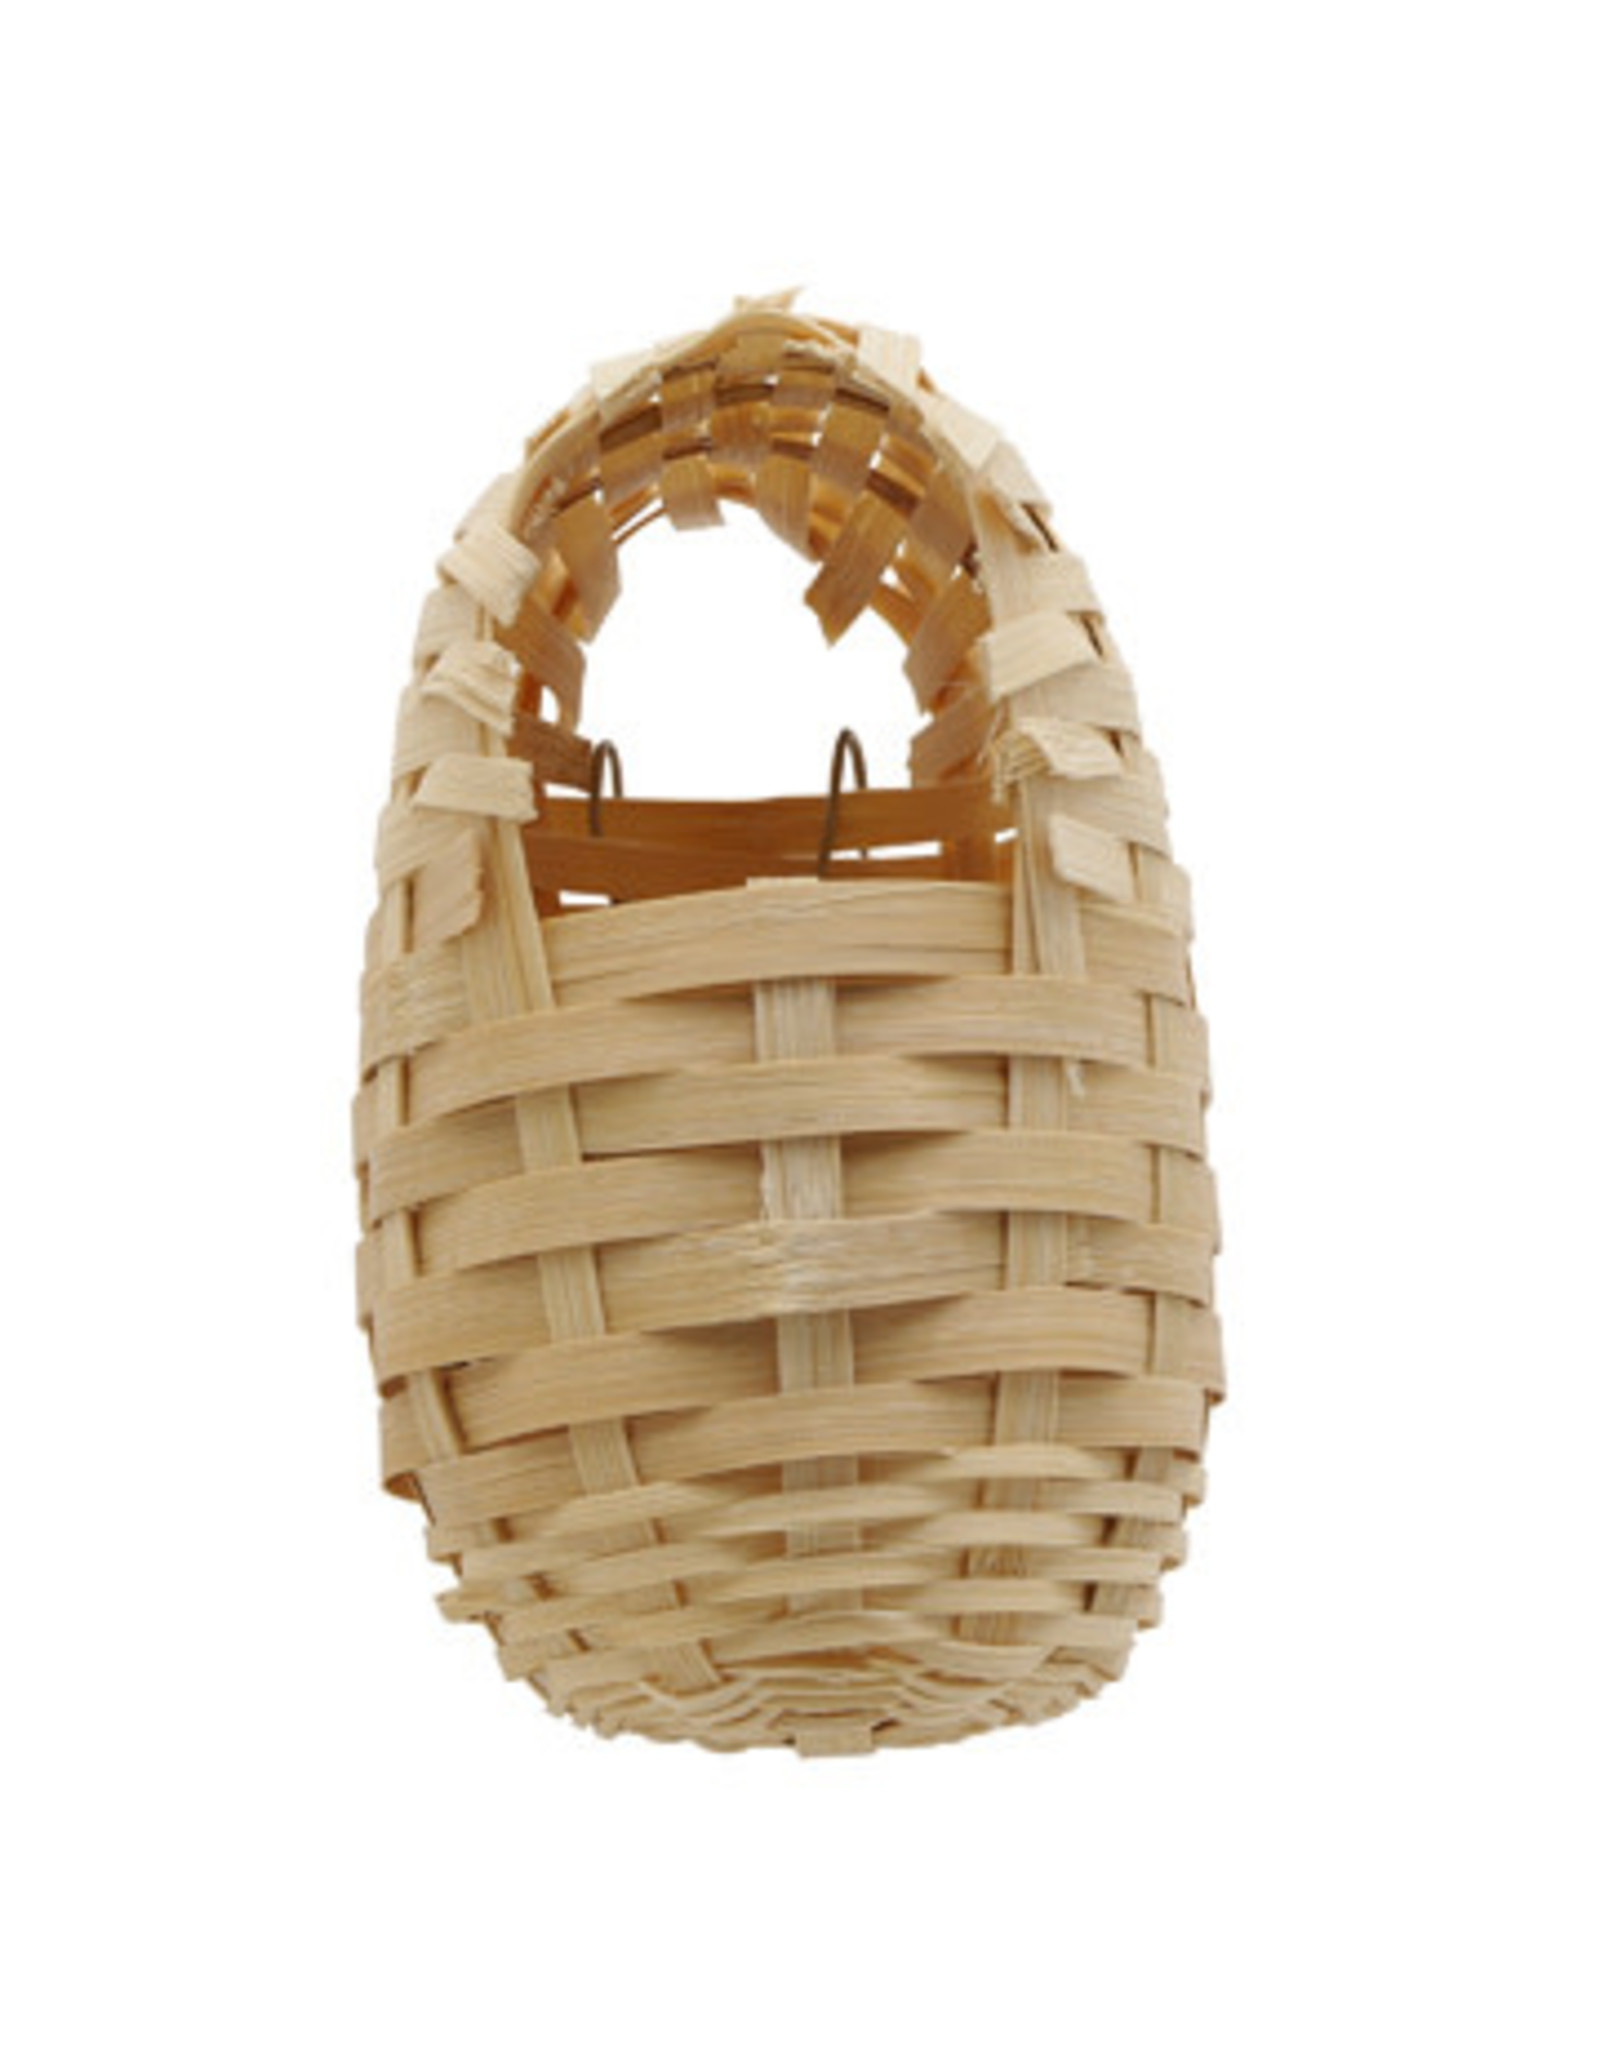 """Living World Bamboo Bird Nest for Finches - Small - 8 cm x 9 cm x 12 cm (3.1"""" x 3.5"""" x 4.7"""" in)"""